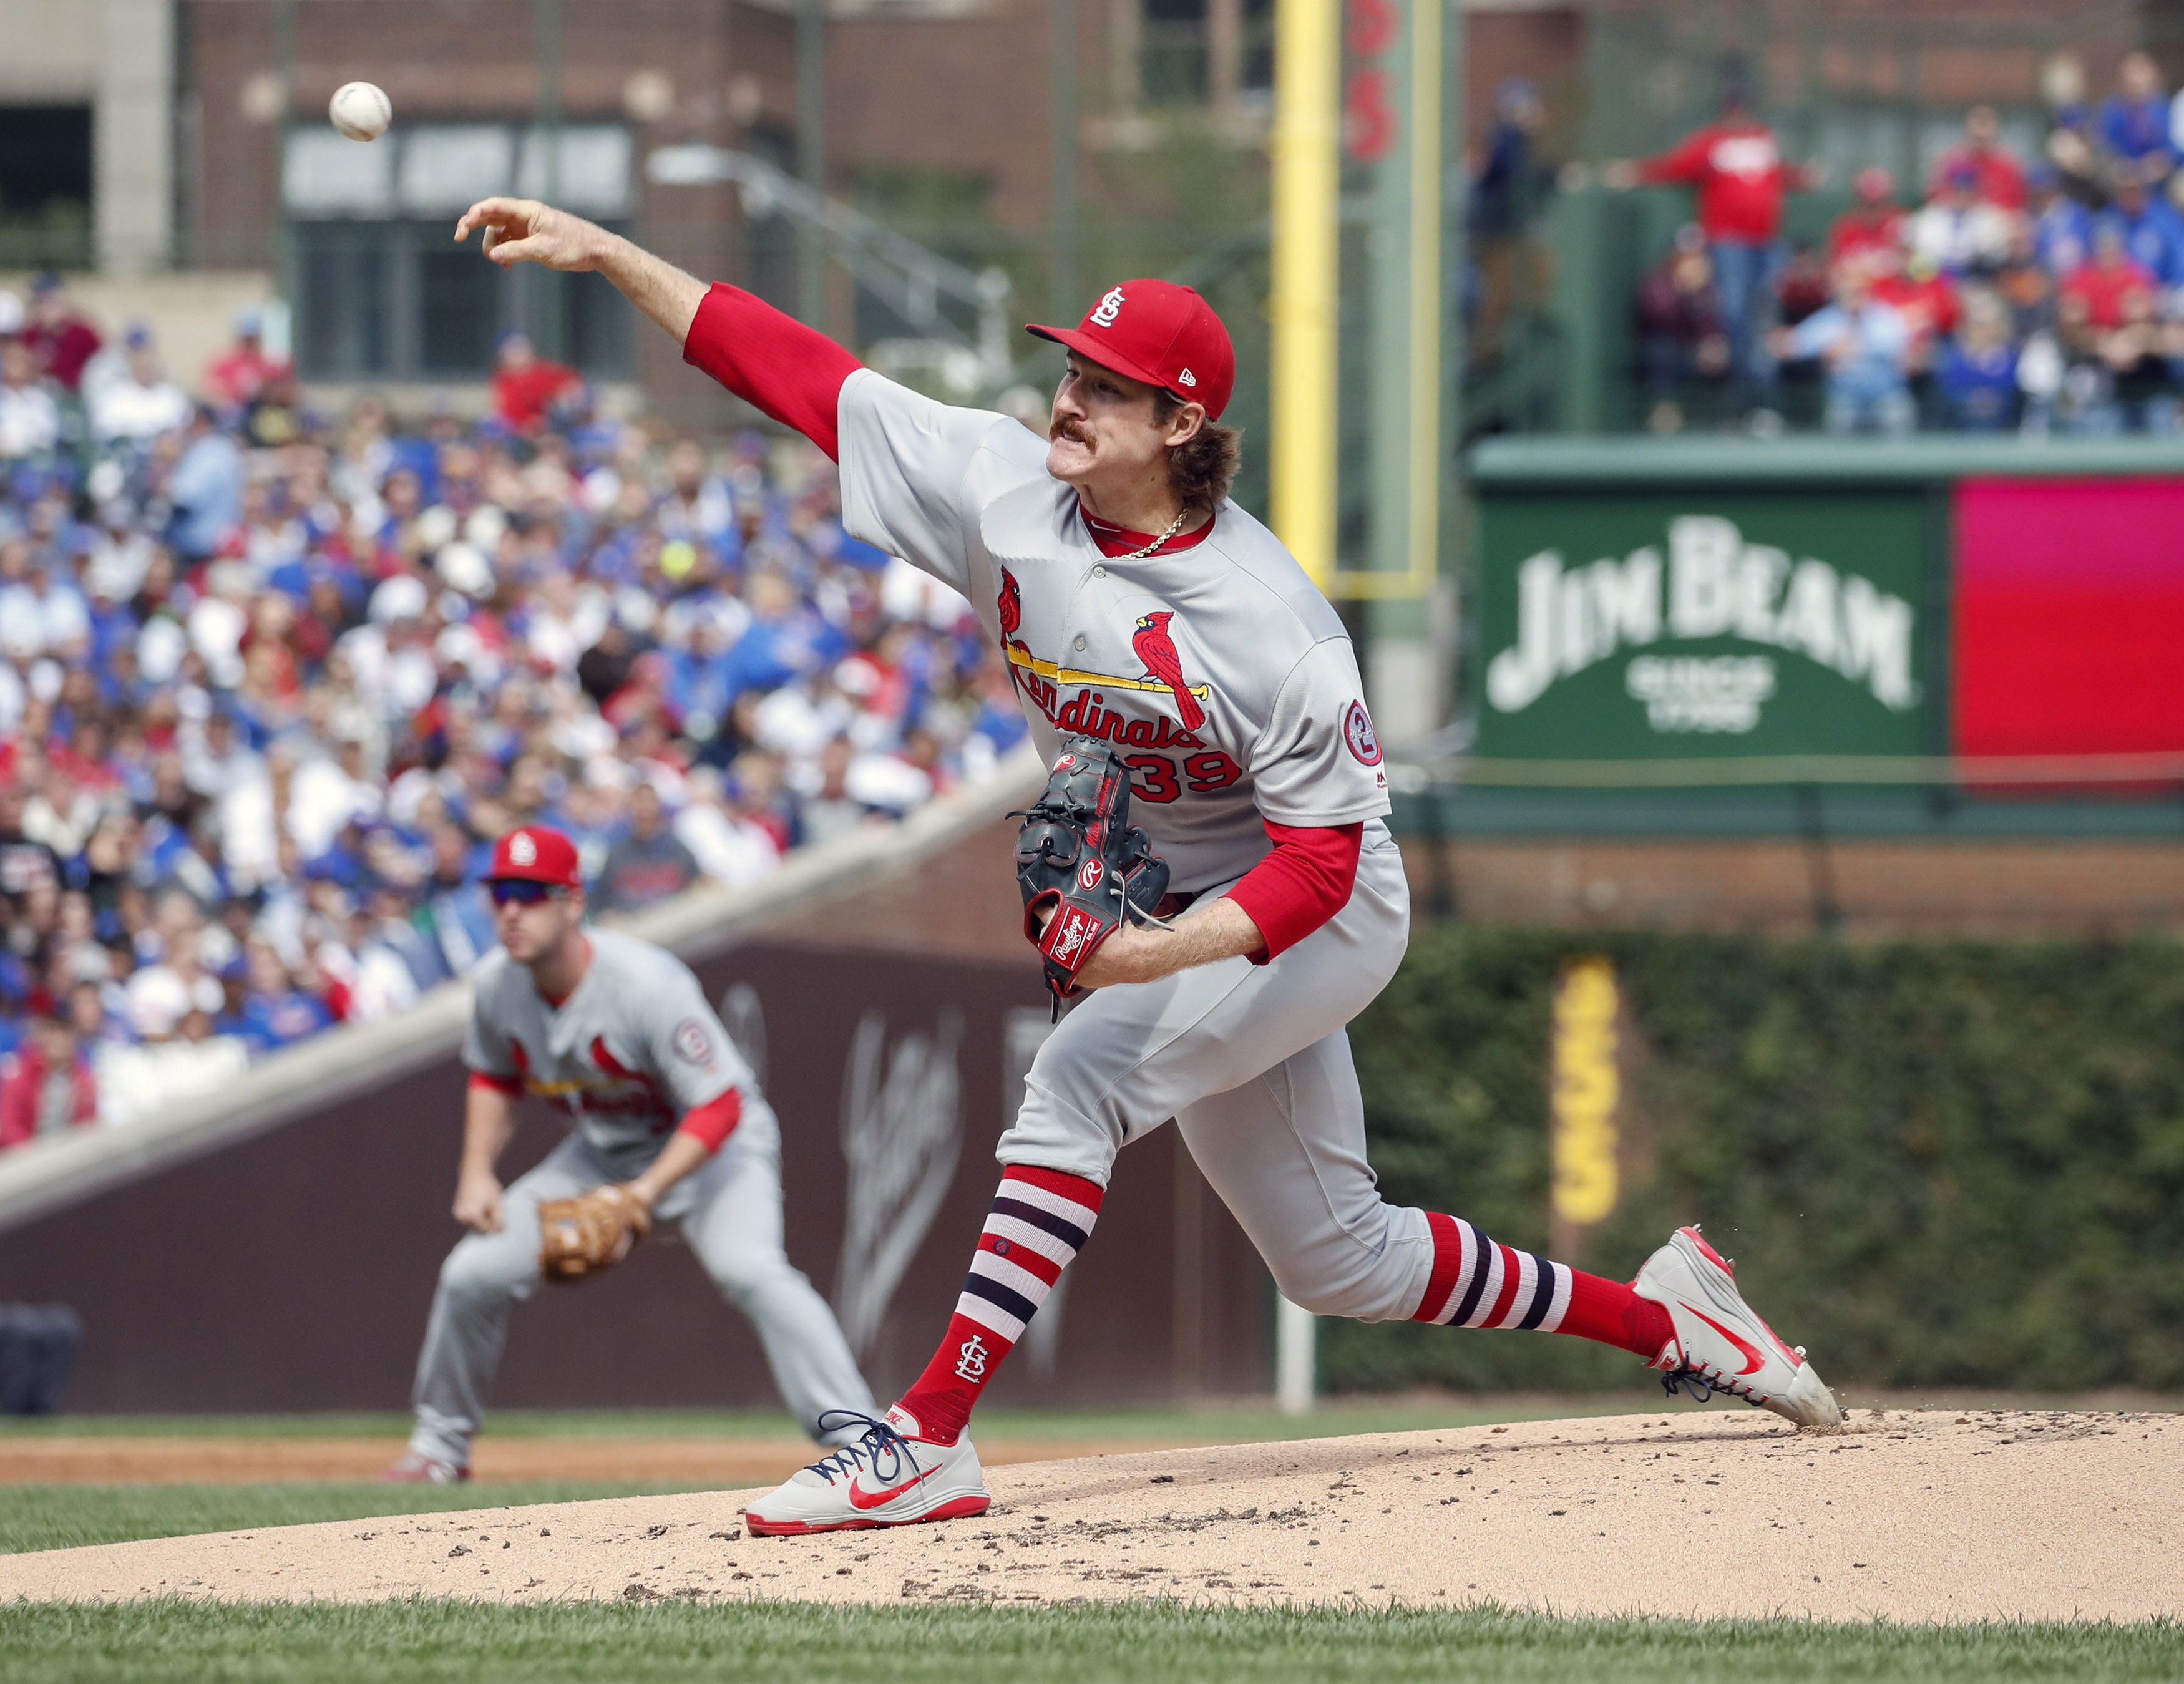 Sabermetrics news: Miles Mikolas signs an extension with the